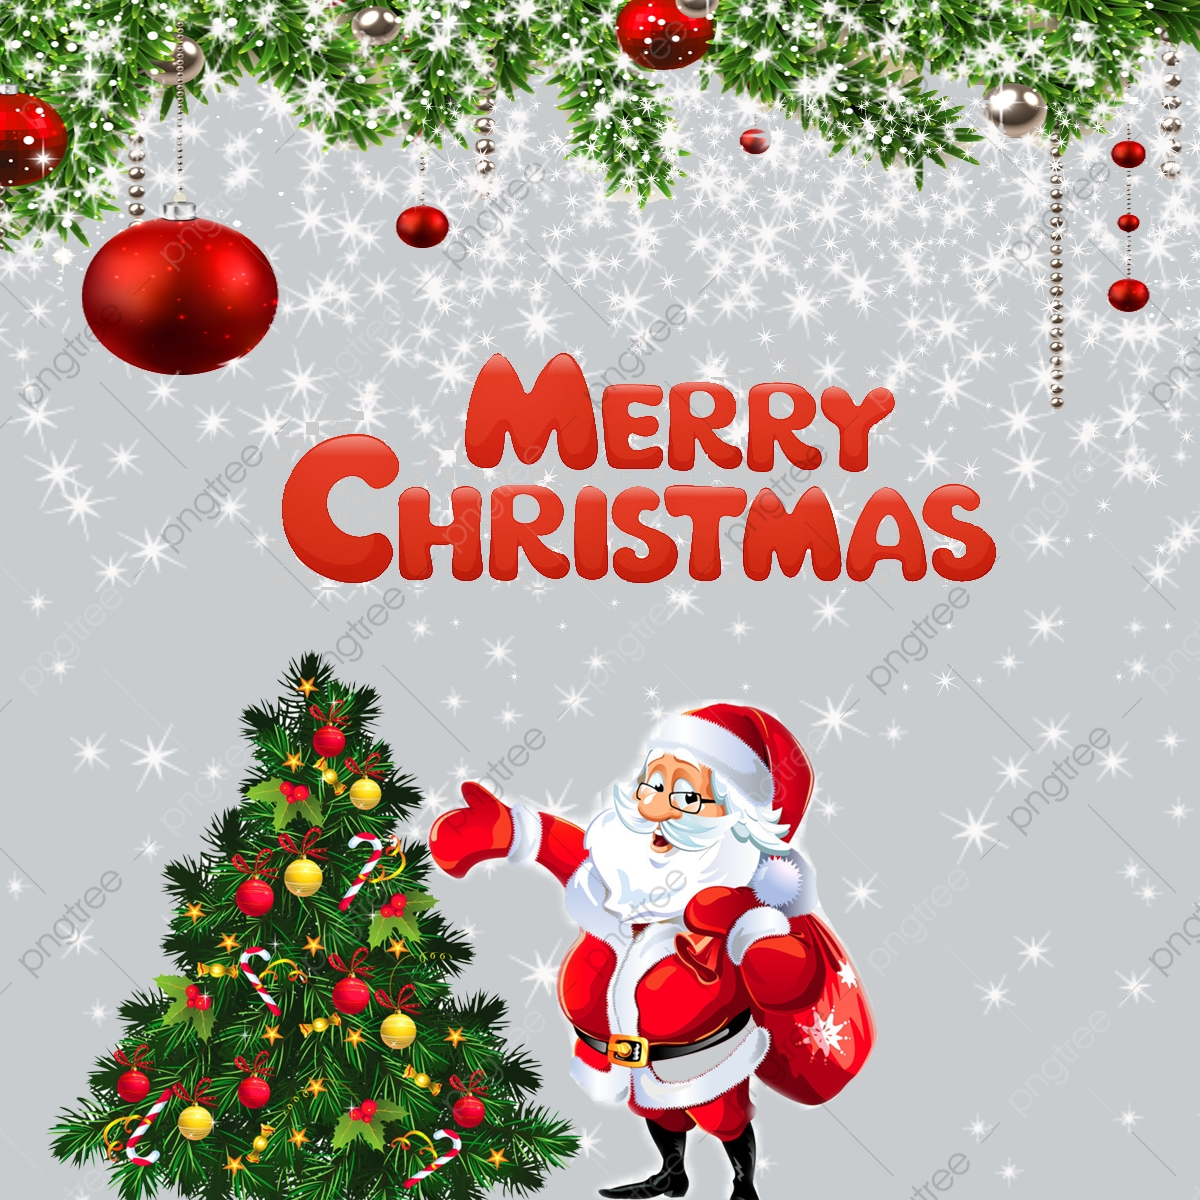 Happy Christmas Png Images Vector And Psd Files Free Download On Pngtree